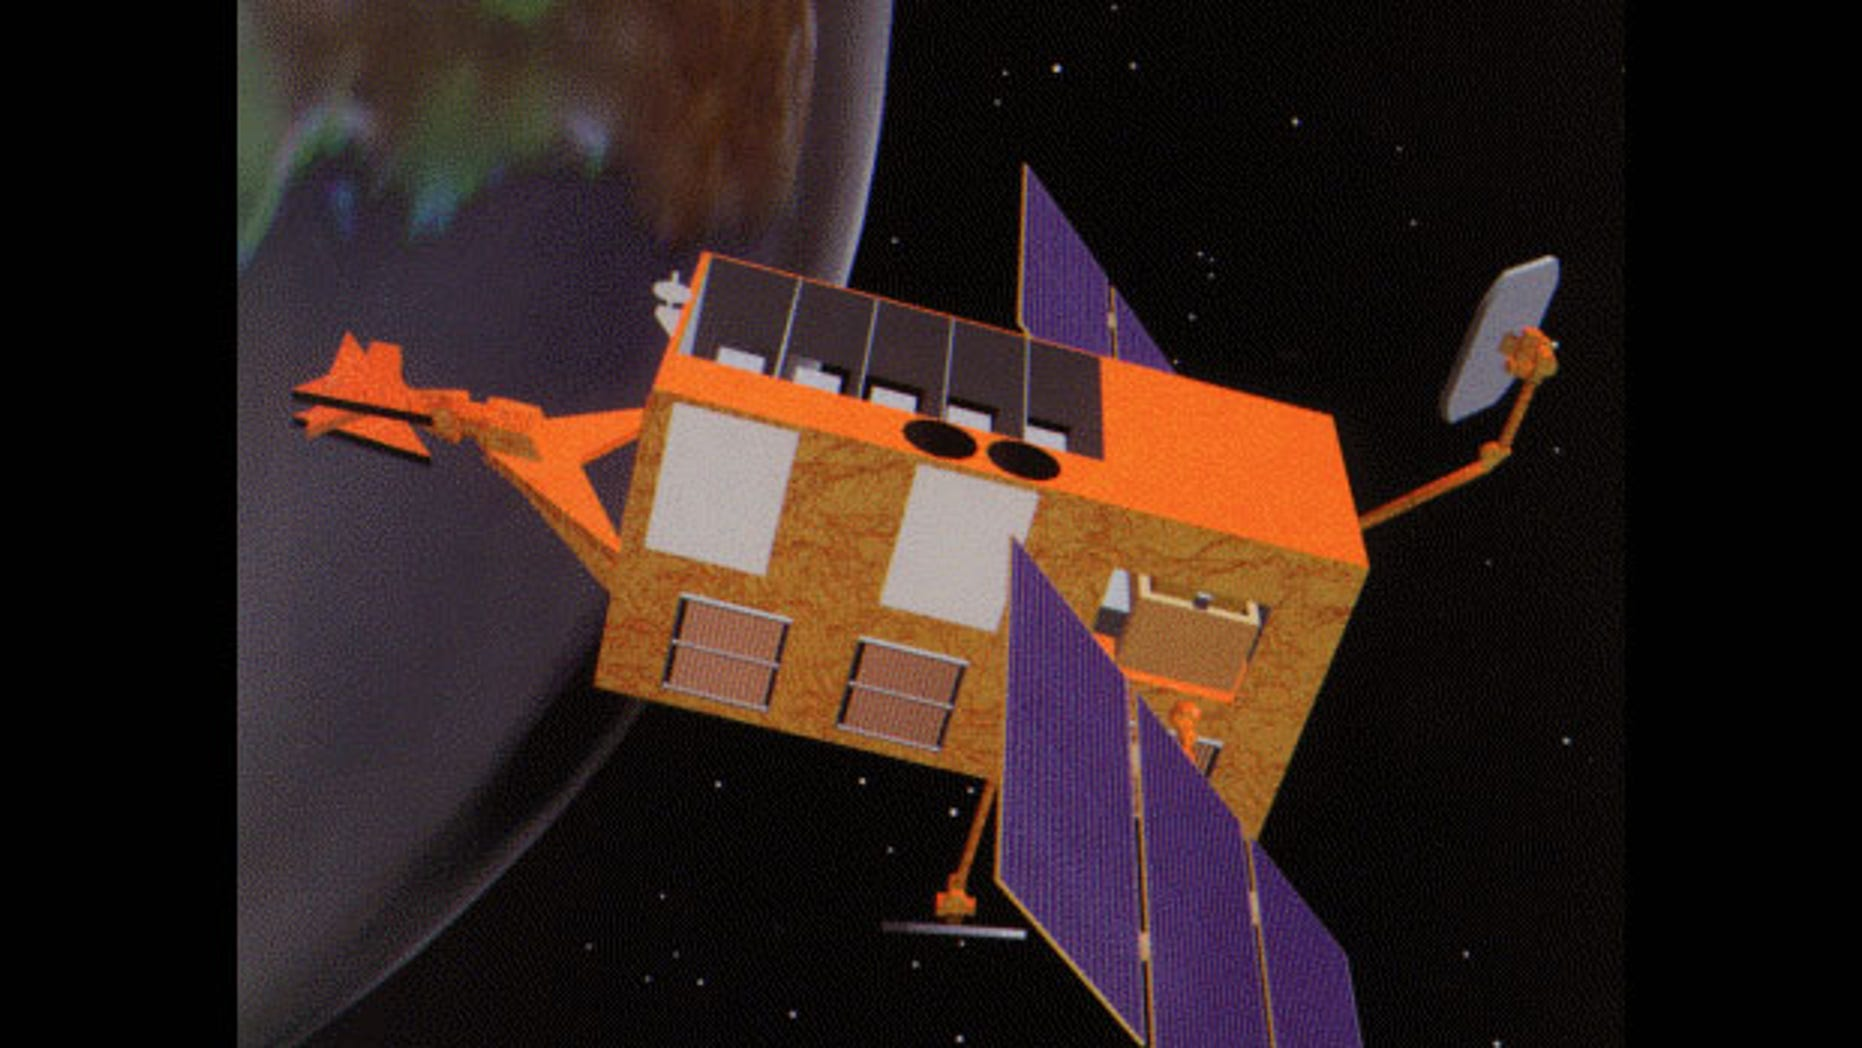 NASA's Rossi X-ray Timing Explorer satellite, shown here in an old artist's illustration, fell to Earth on April 30, 2018, burning up in the atmosphere. The satellite launched in 1995 and was decommissioned in 2012.